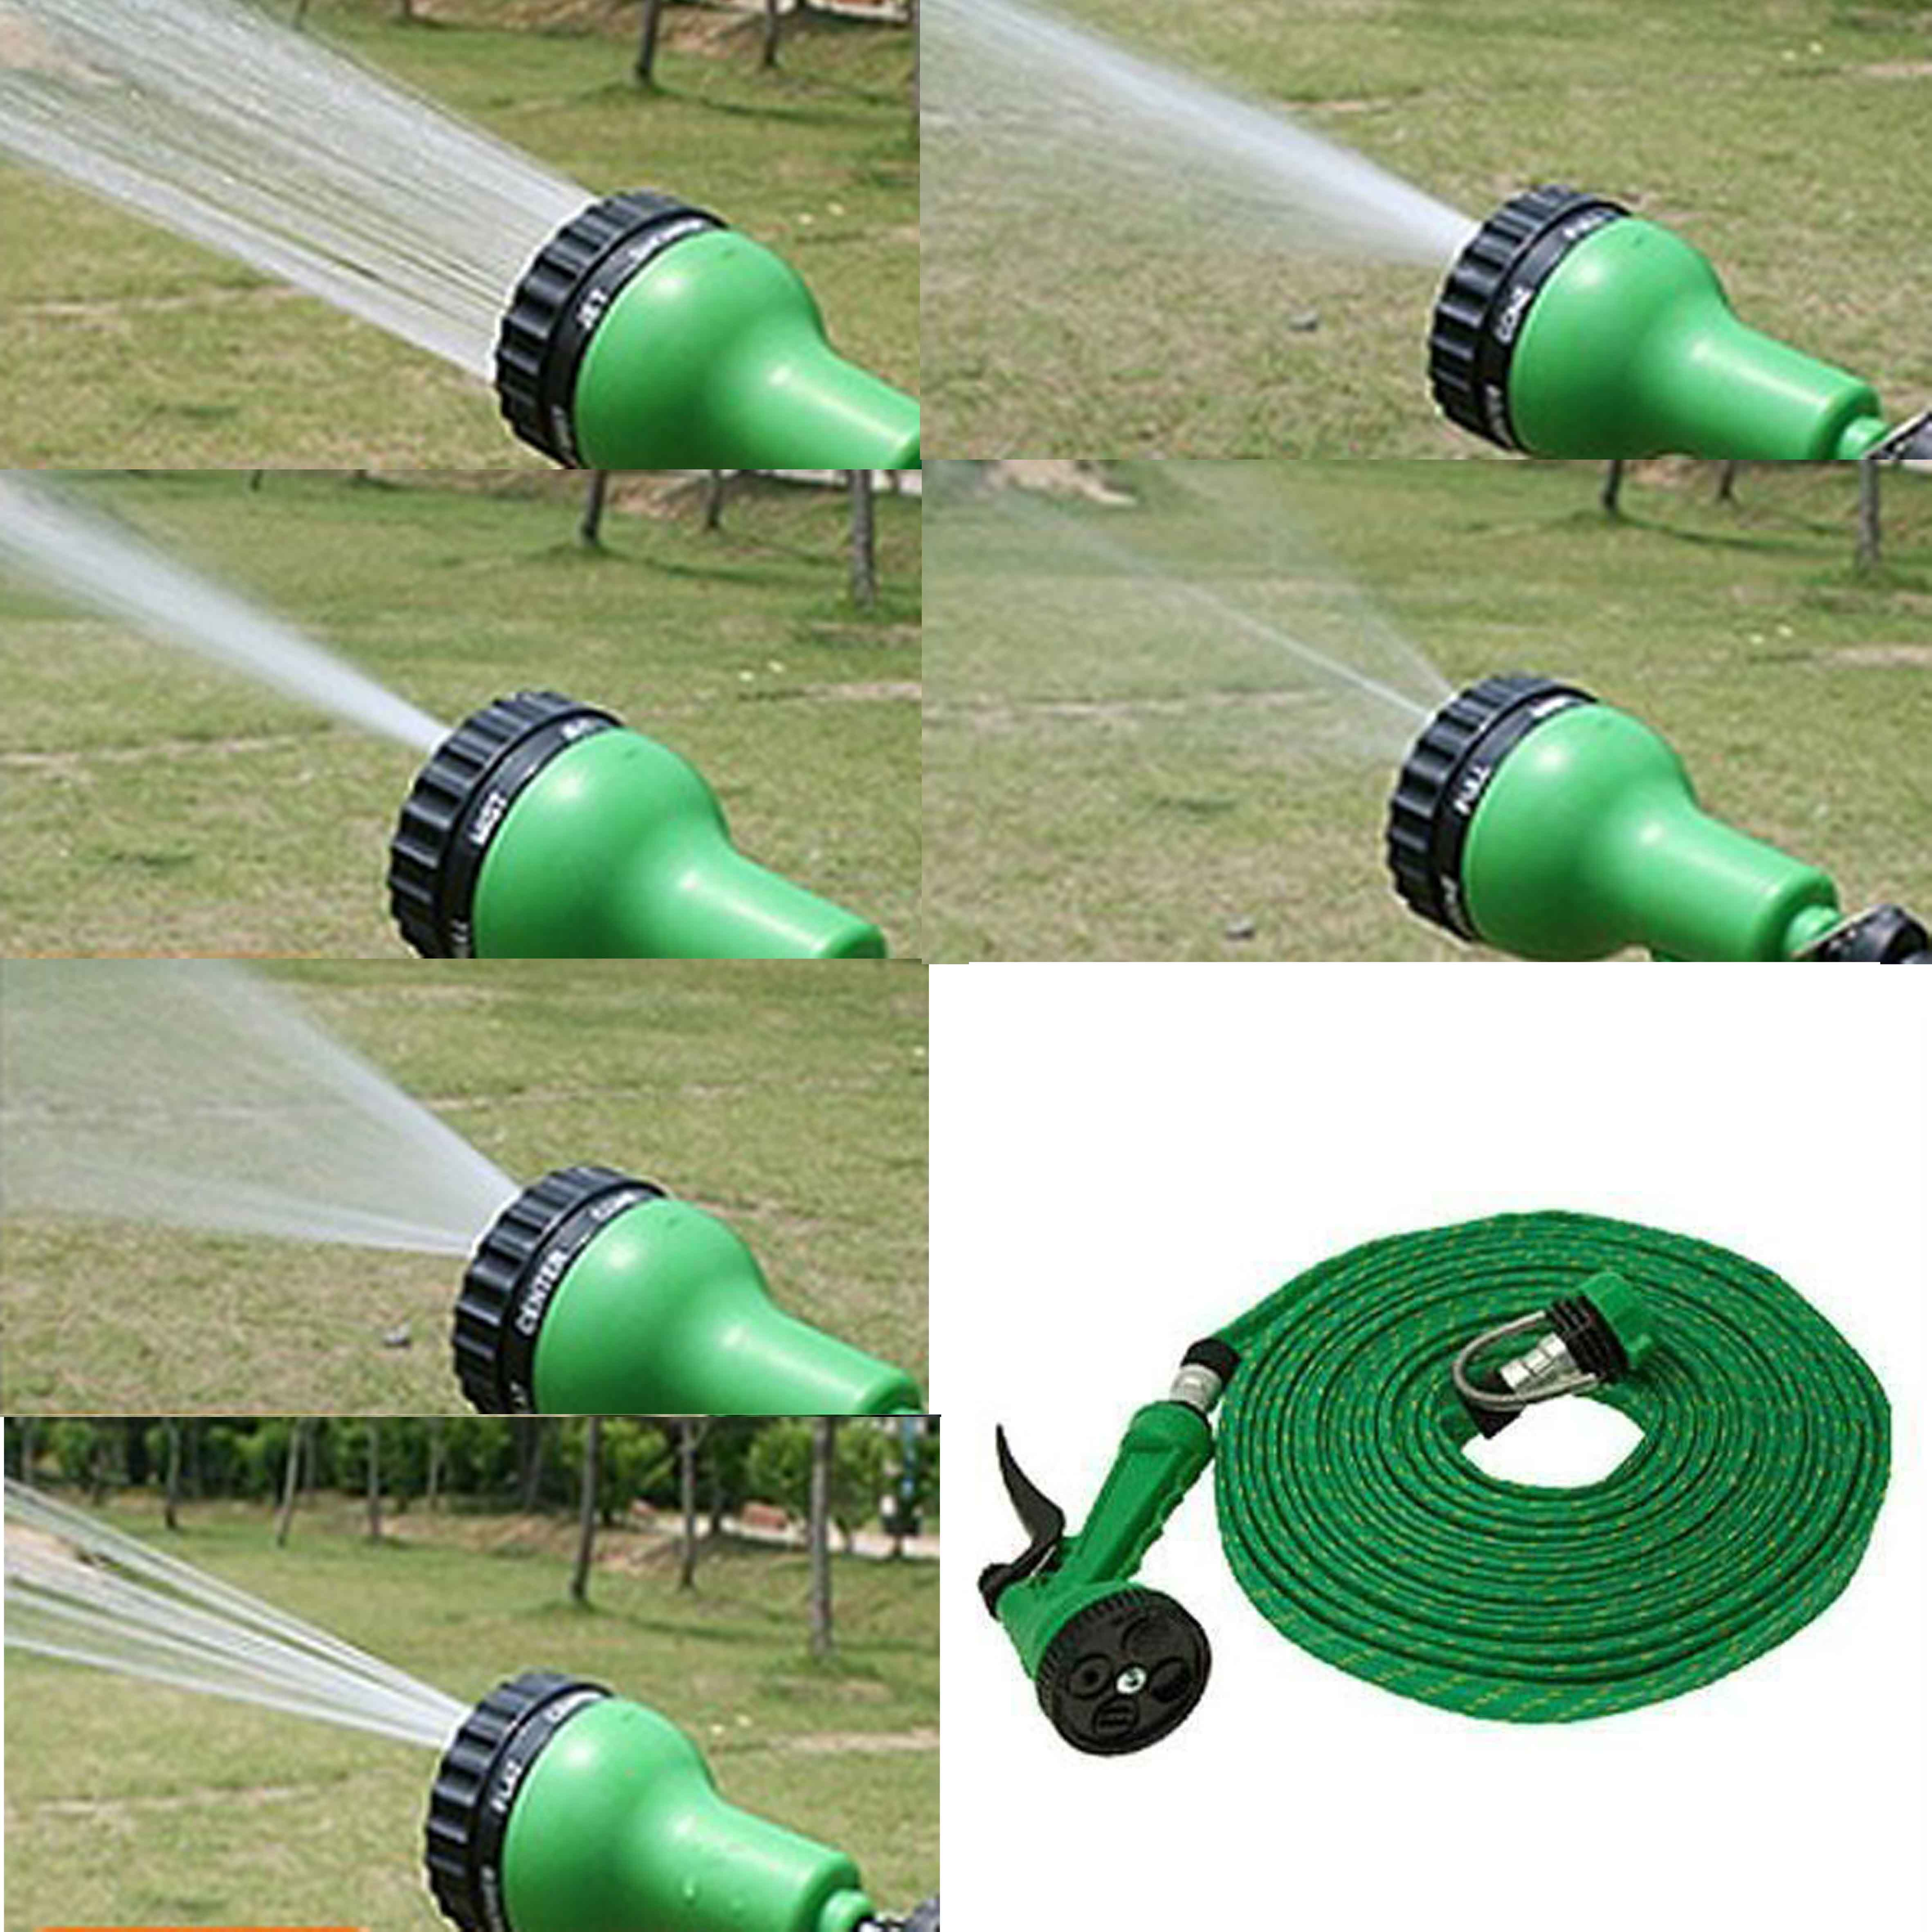 Car Wash Pipe with 6 spray modes  Water Pressure Spray Gun for CarBikeGarden available at ShopClues for Rs.160